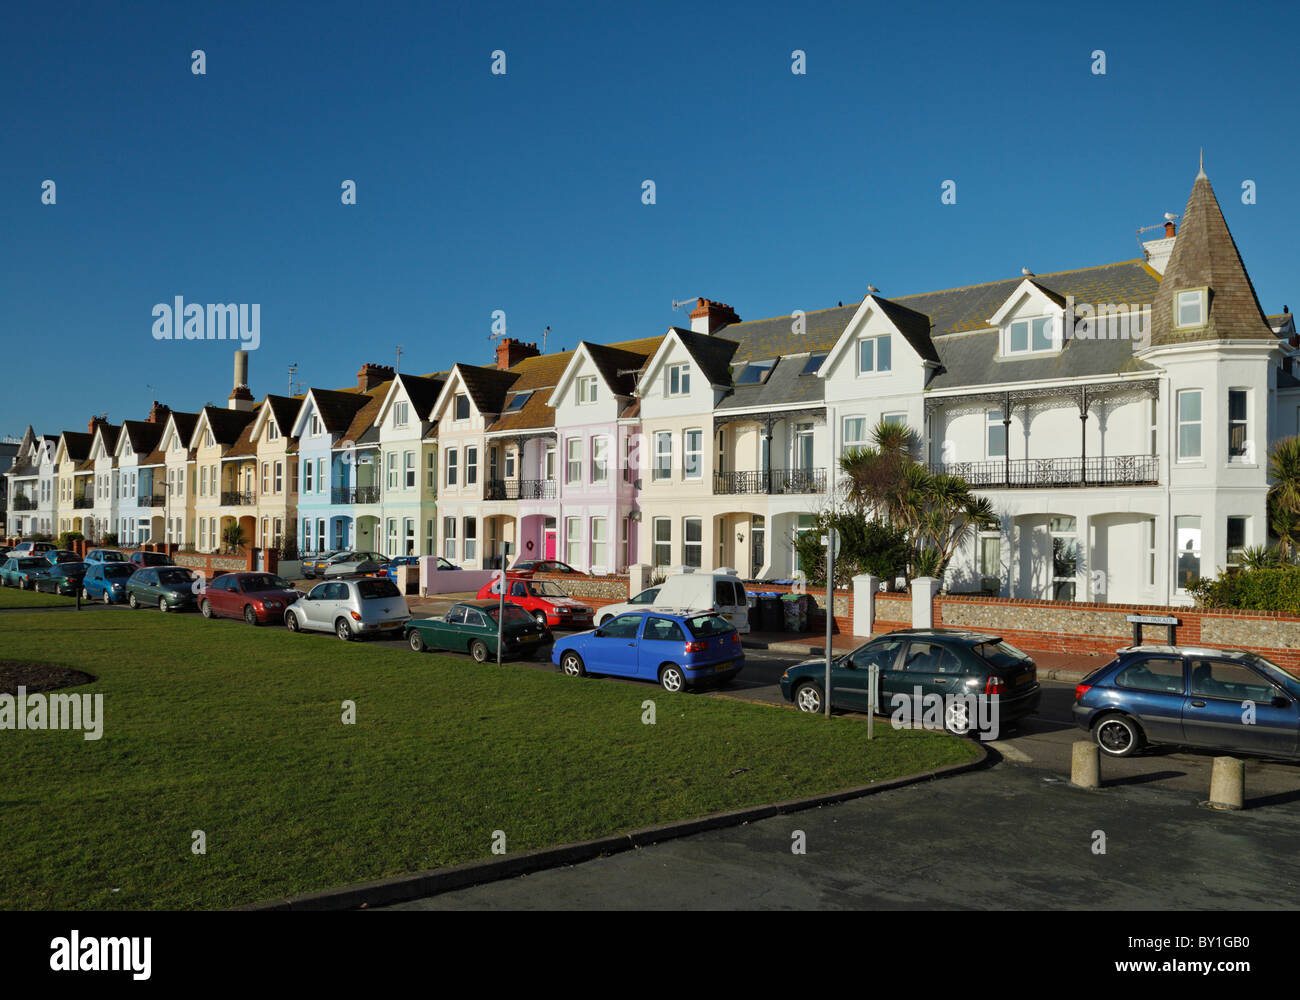 Row of colourful seafront residential housing, Worthing. - Stock Image